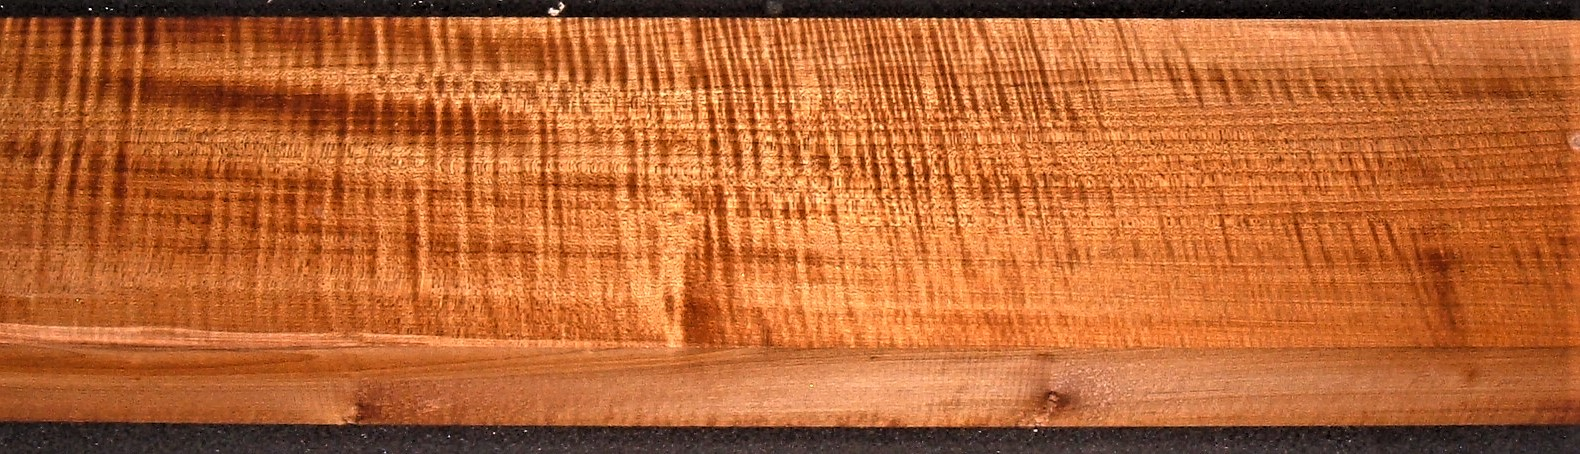 QRM2009-155JK, 1-7/8x5-7/8x48, Quartersawn Roasted Curly Maple